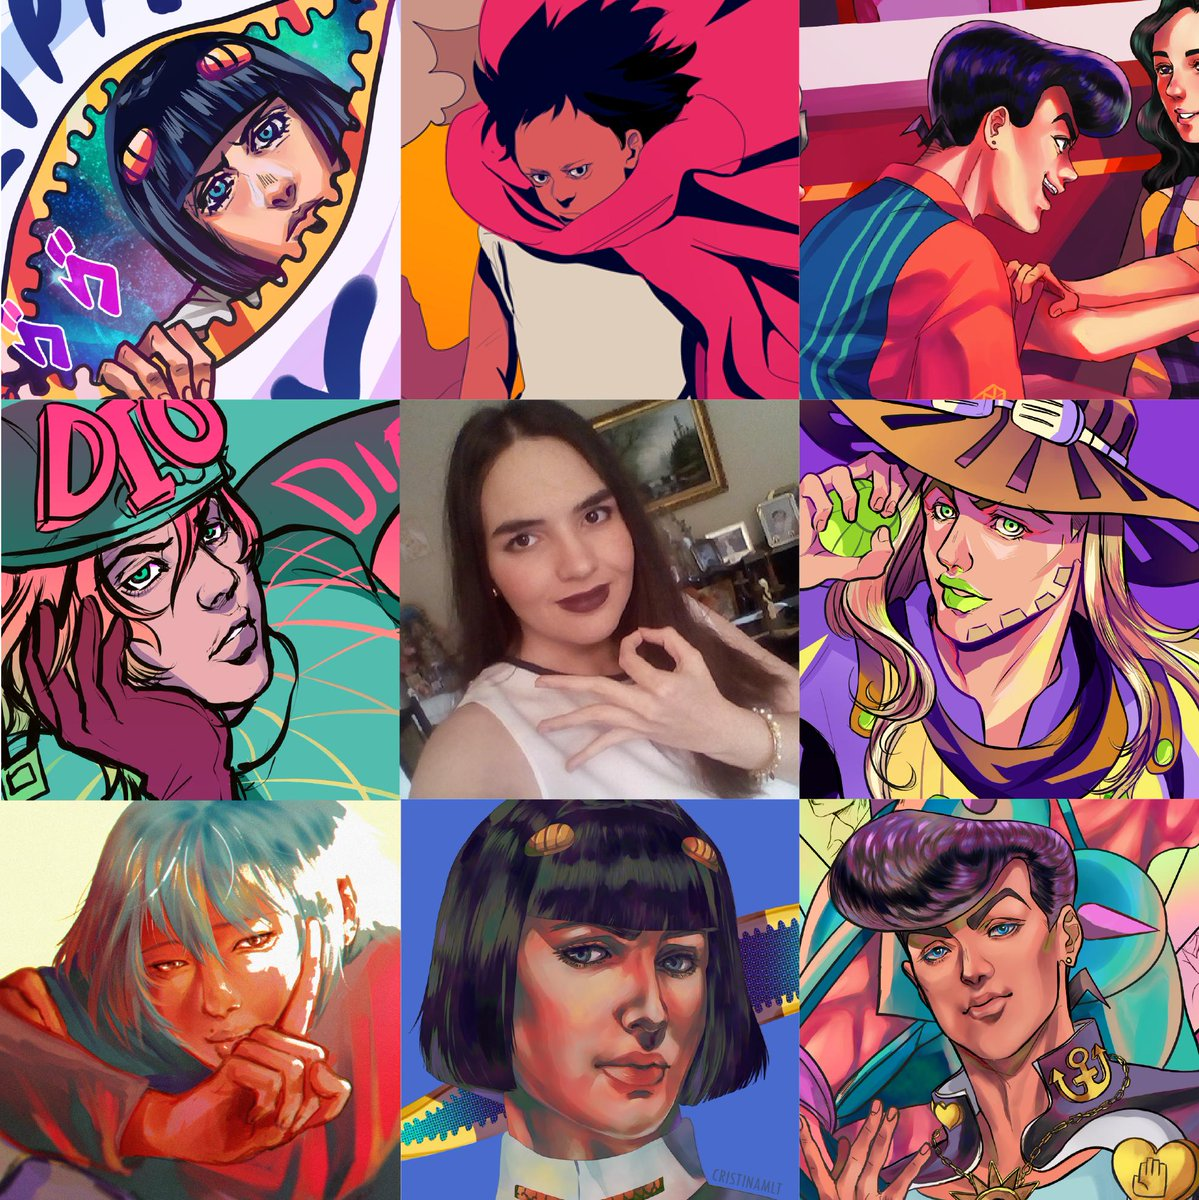 hello, I&#39;m Cristina López commissions are closed, but you can support me here!    http:// ko-fi.com/cristinamlt  &nbsp;    I&#39;m saving to move to Uruguay and join my sister. Meanwhile I&#39;m surviving the venezuelan crisis on a daily basis   http:// cristinamlt.tumblr.com / &nbsp;     http:// instagram.com/cristinamlt  &nbsp;  <br>http://pic.twitter.com/hP5fdKq9Lt